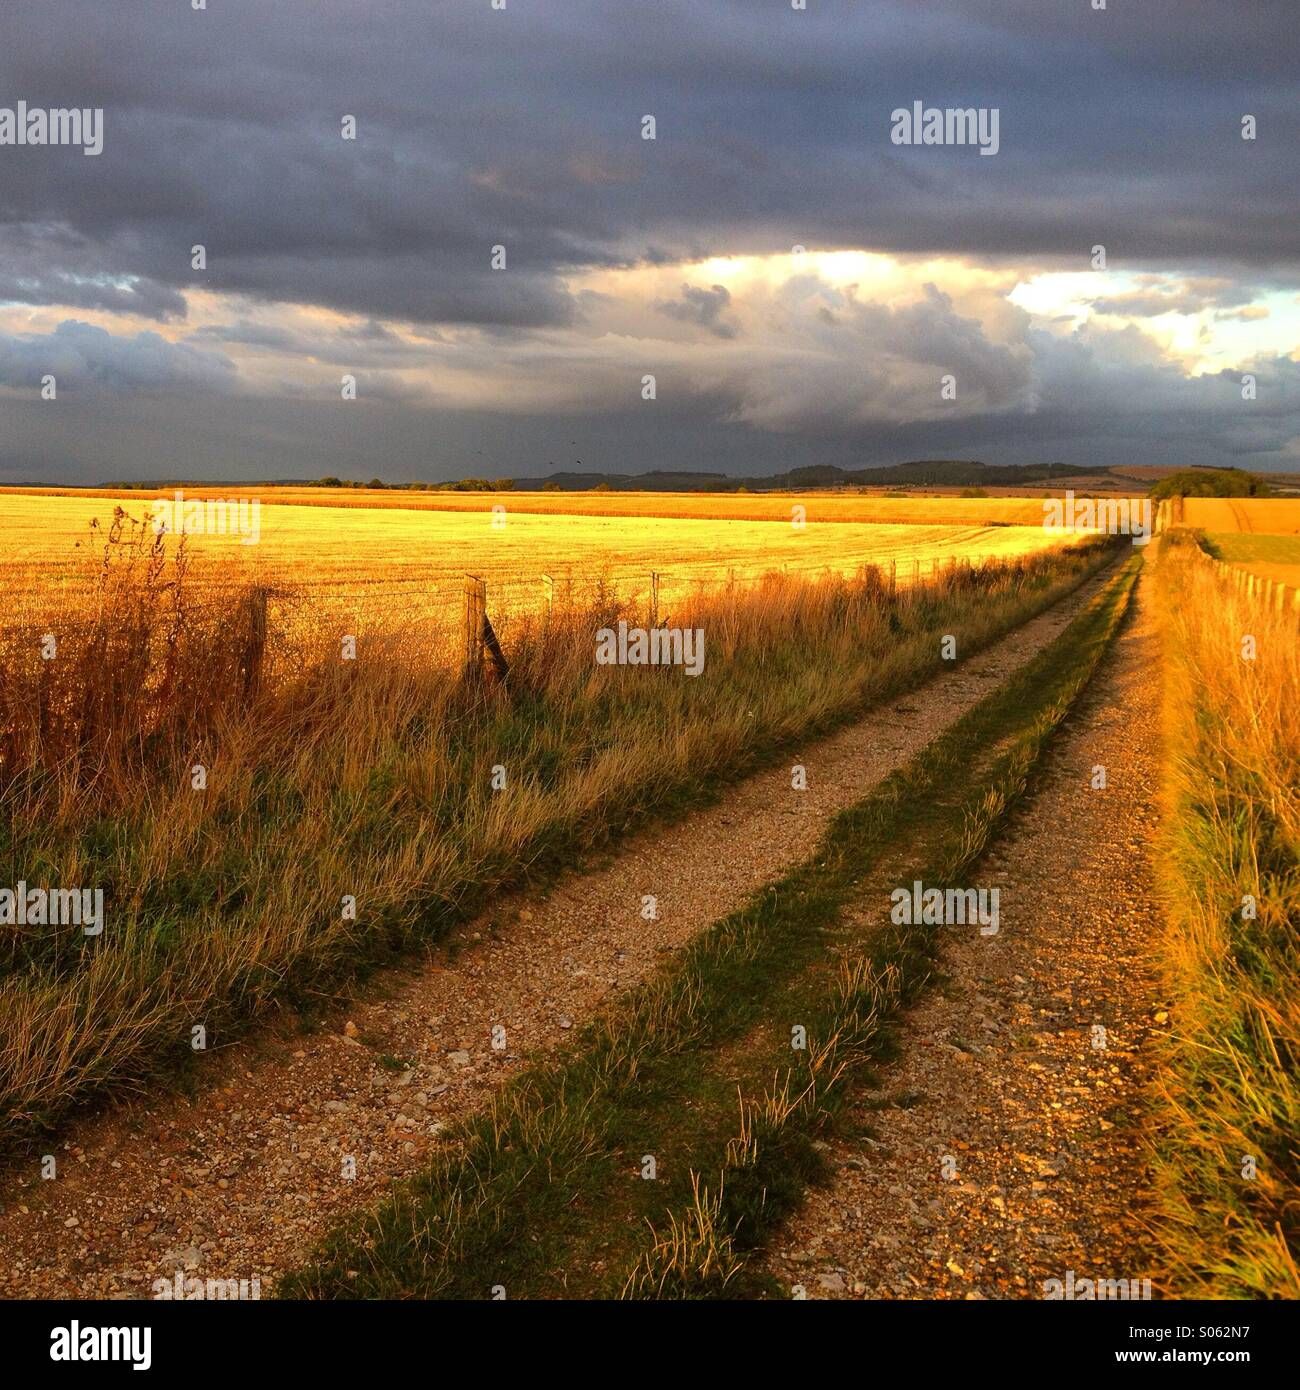 Countryside farm track, Near Amesbury, Wiltshire, England. Dusk. Late Summer 2014. - Stock Image